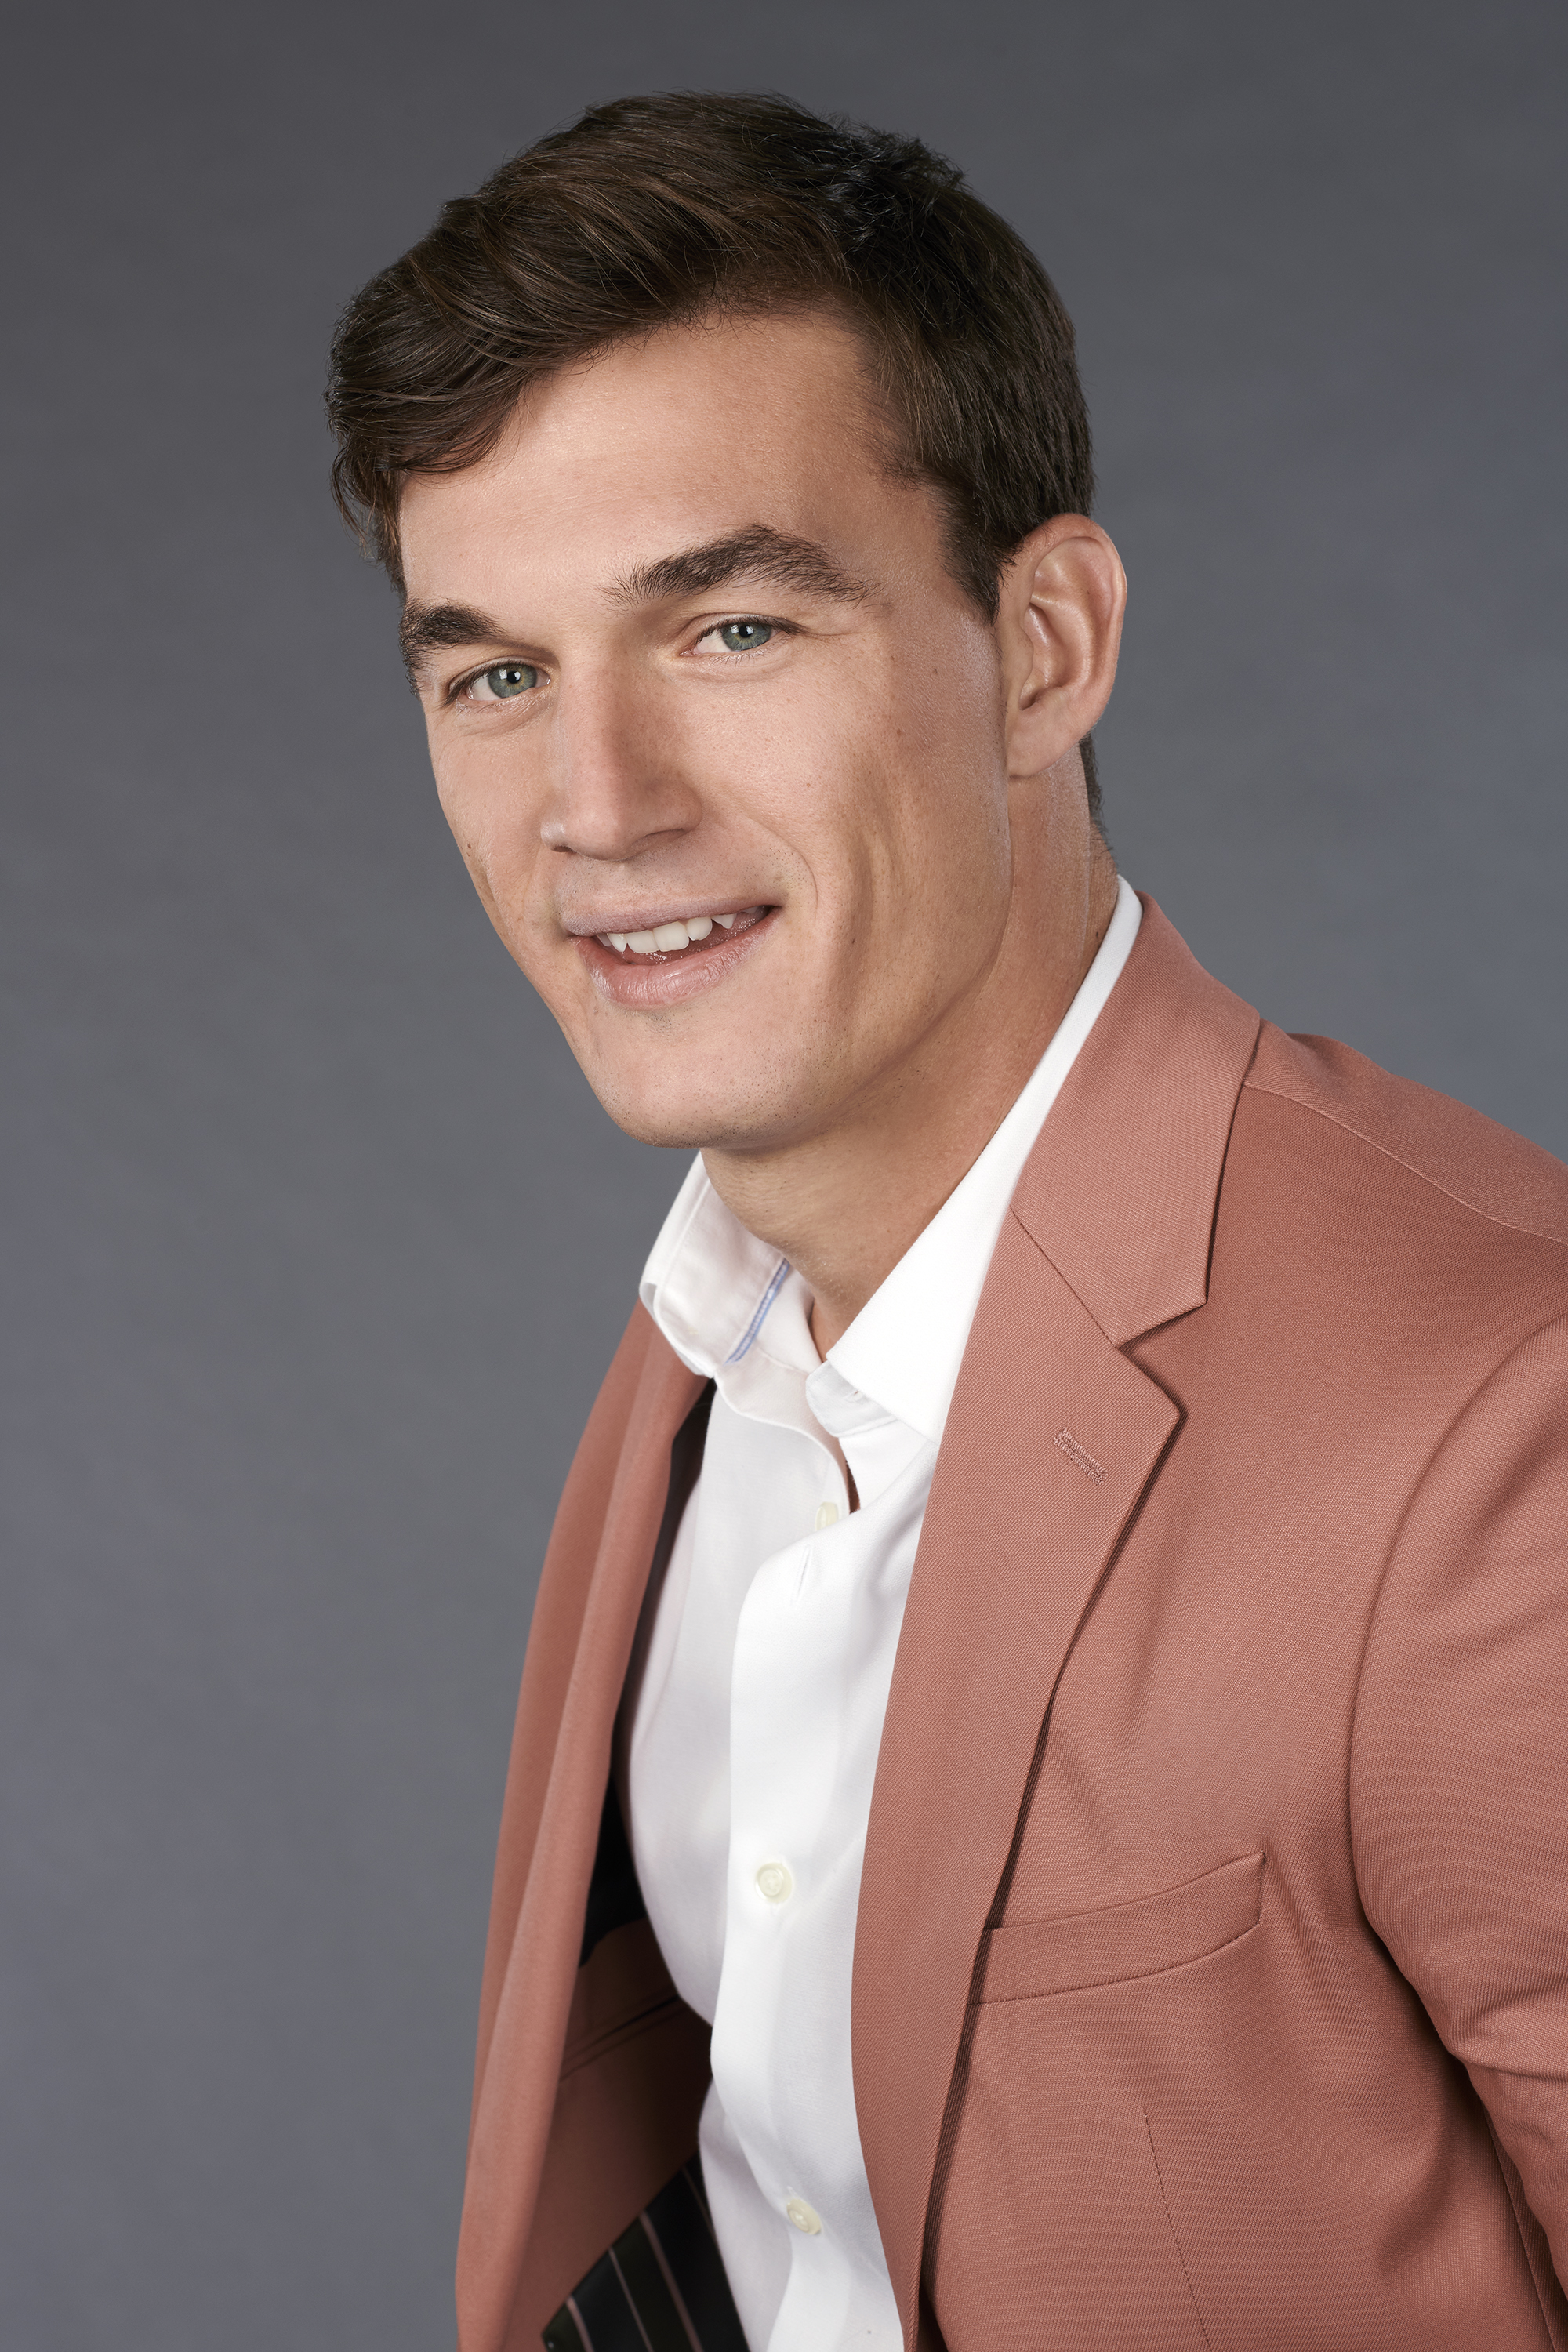 Bachelorette 15 - Tyler Cameron - **Sleuthing Spoilers** - Page 5 17d00365-79a8-4bd9-afc4-0789e4bf015e